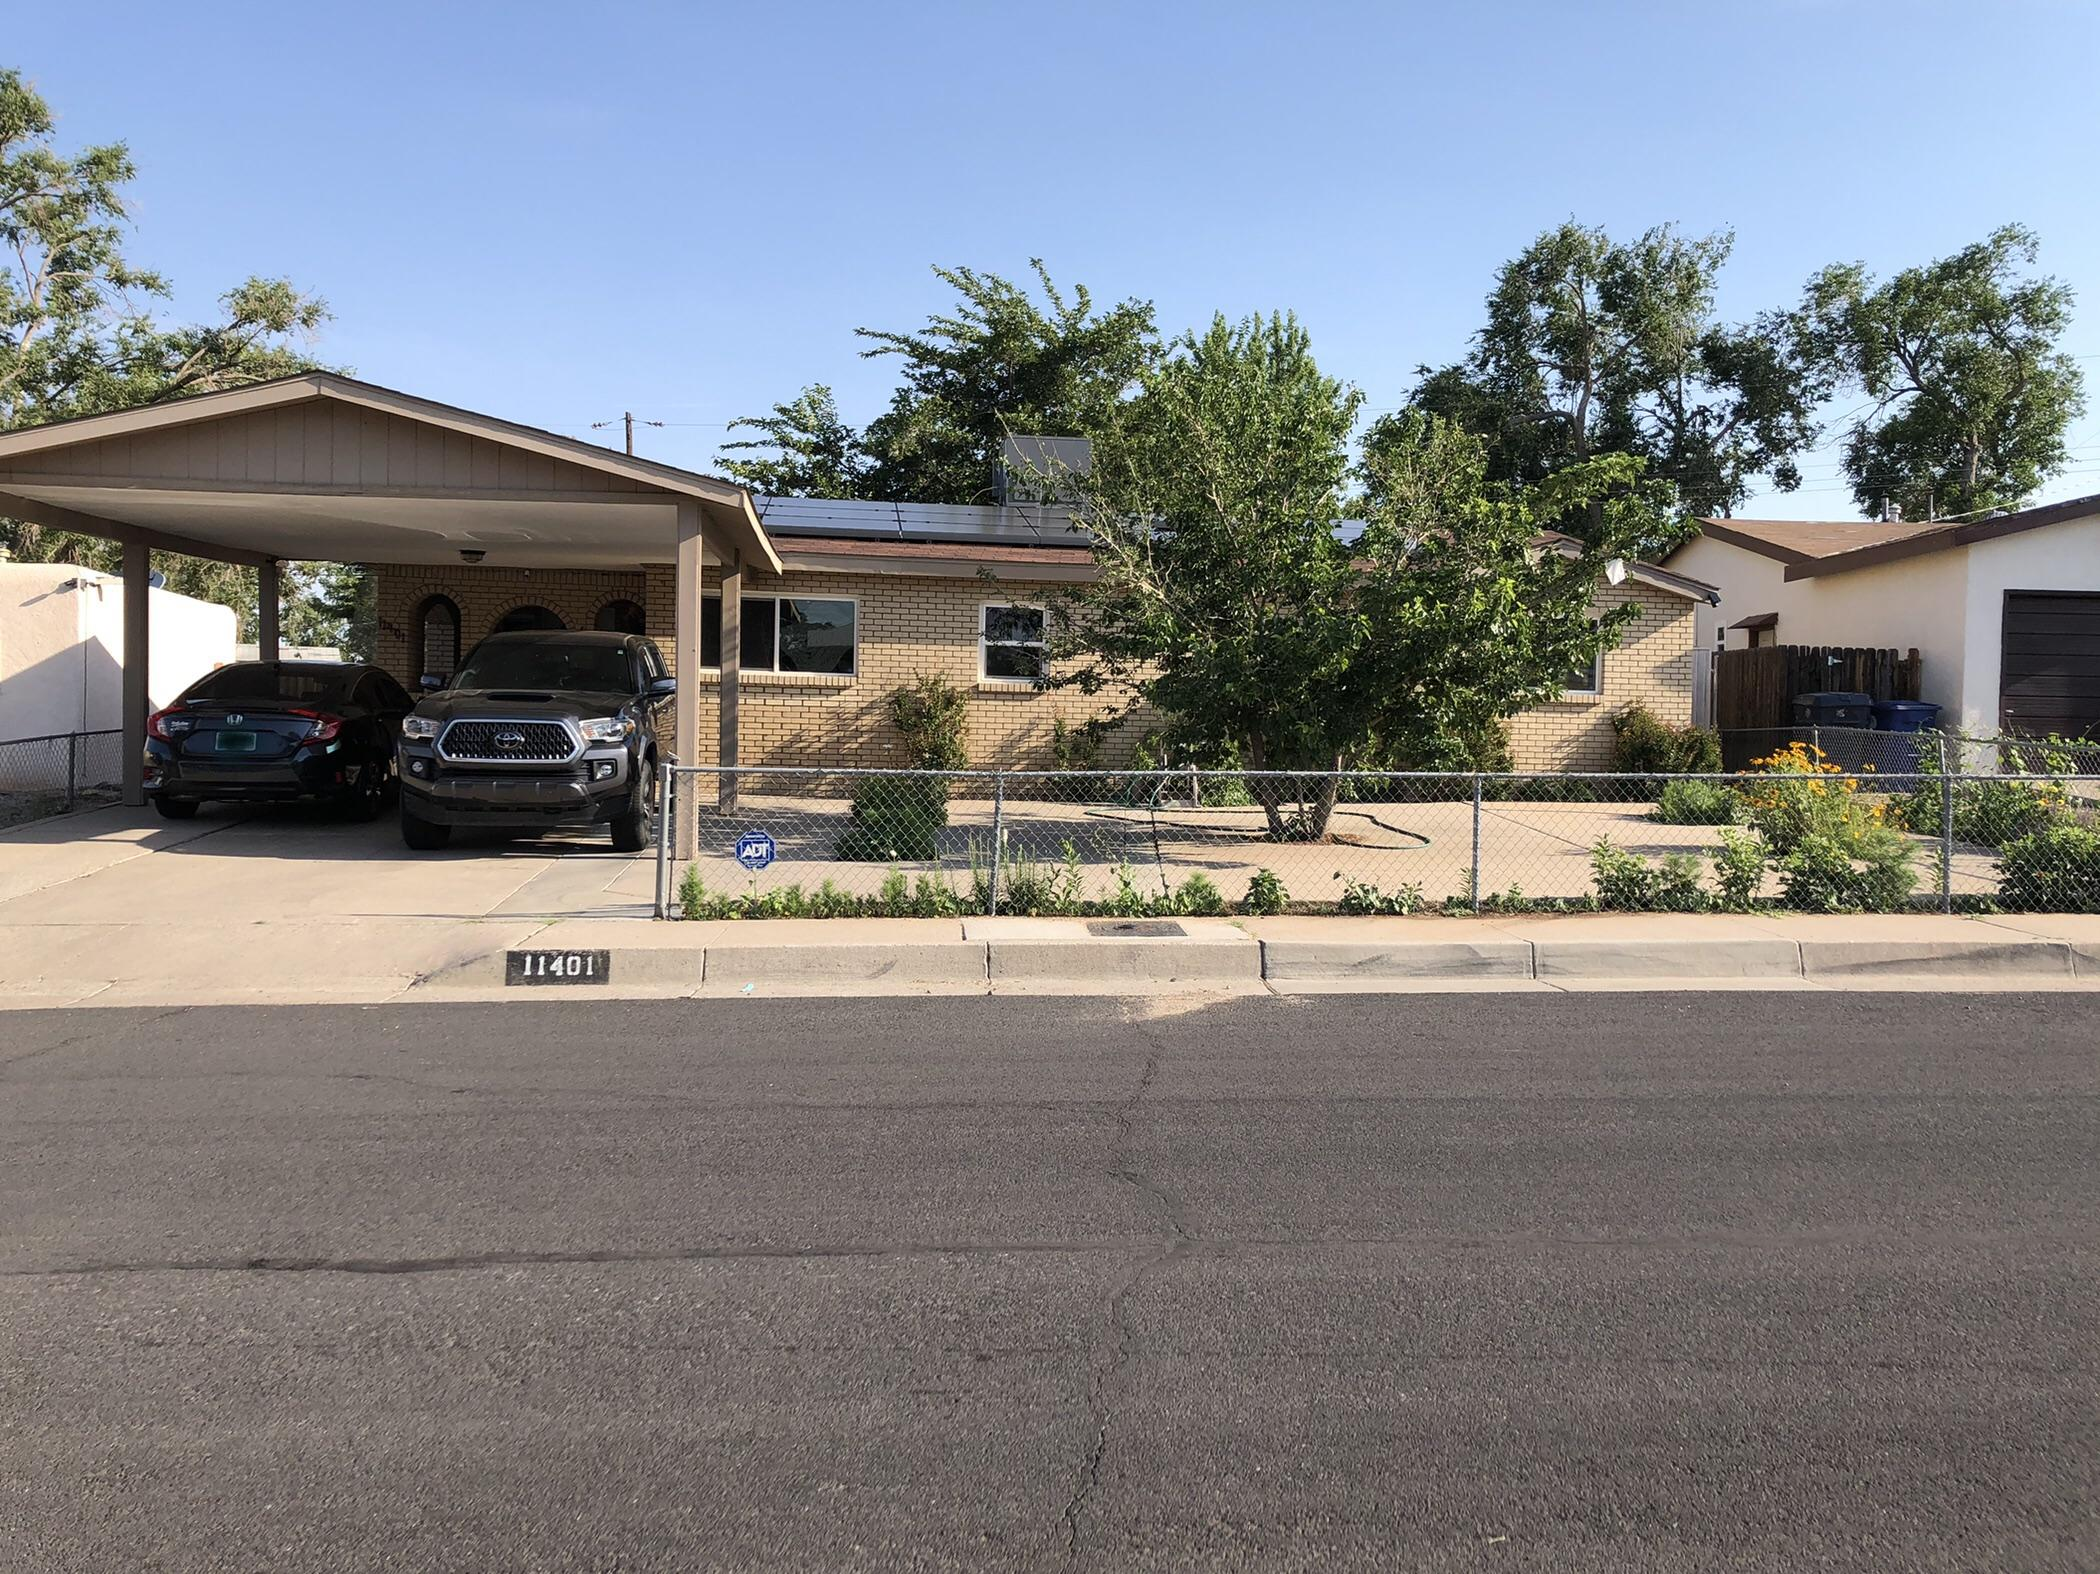 Welcome to a charming 1850-square-foot, 4-bedroom, 2-bath home in the NE Heights! The kitchen has plenty of beautiful granite counter space, and hardwood, tile, and laminate flooring throughout make cleaning a breeze. The huge master suite has a bathroom with dual sinks, a walk-in closet, and private backyard access. Refrigerated air will keep you cool on hot summer days, and the solar system (leased) will provide year-round energy savings. The backyard offers the best of both worlds, with a refreshing in-ground pool and large yard for gardening or pets. The roof is newer, and the water heater and pool pump are brand new. Other amenities include a separate laundry room, security system, Ethernet, covered patio, two-vehicle carport, a pool shed, and a huge storage shed/workshop with power.